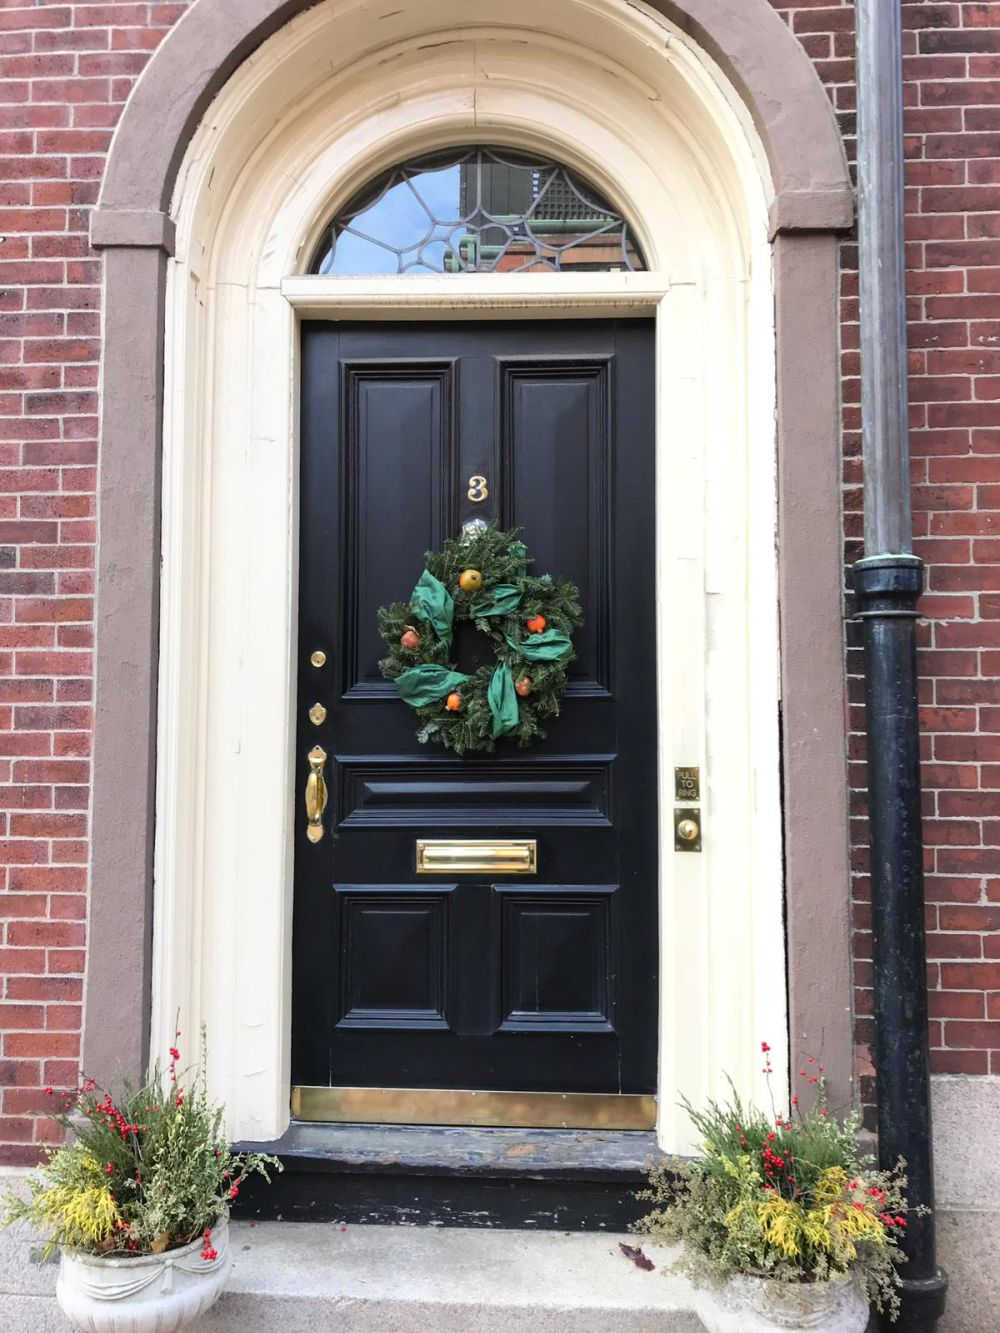 Keep the design of the wreath traditional for a more cozy and welcoming look